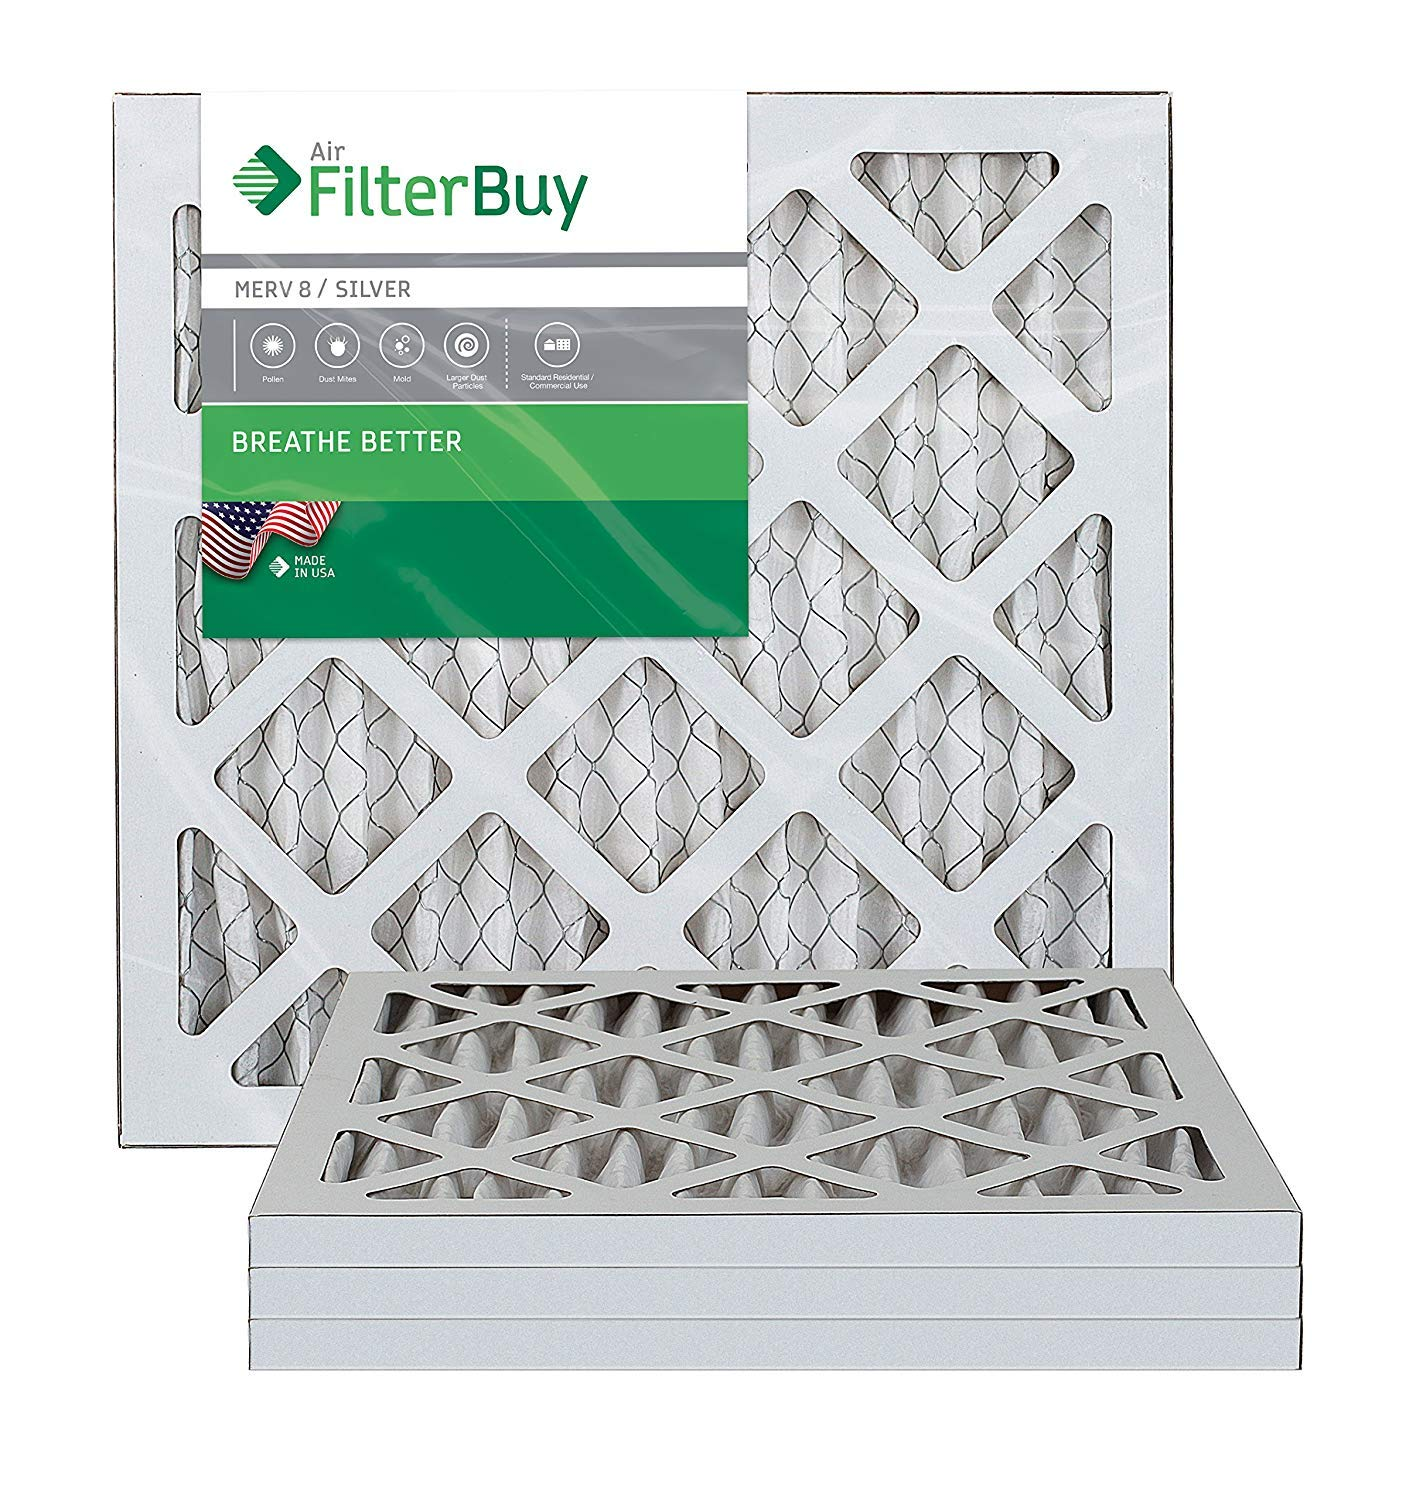 FilterBuy 16x16x1 MERV 8 Pleated AC Furnace Air Filter, (Pack of 4 Filters), 16x16x1 - Silver